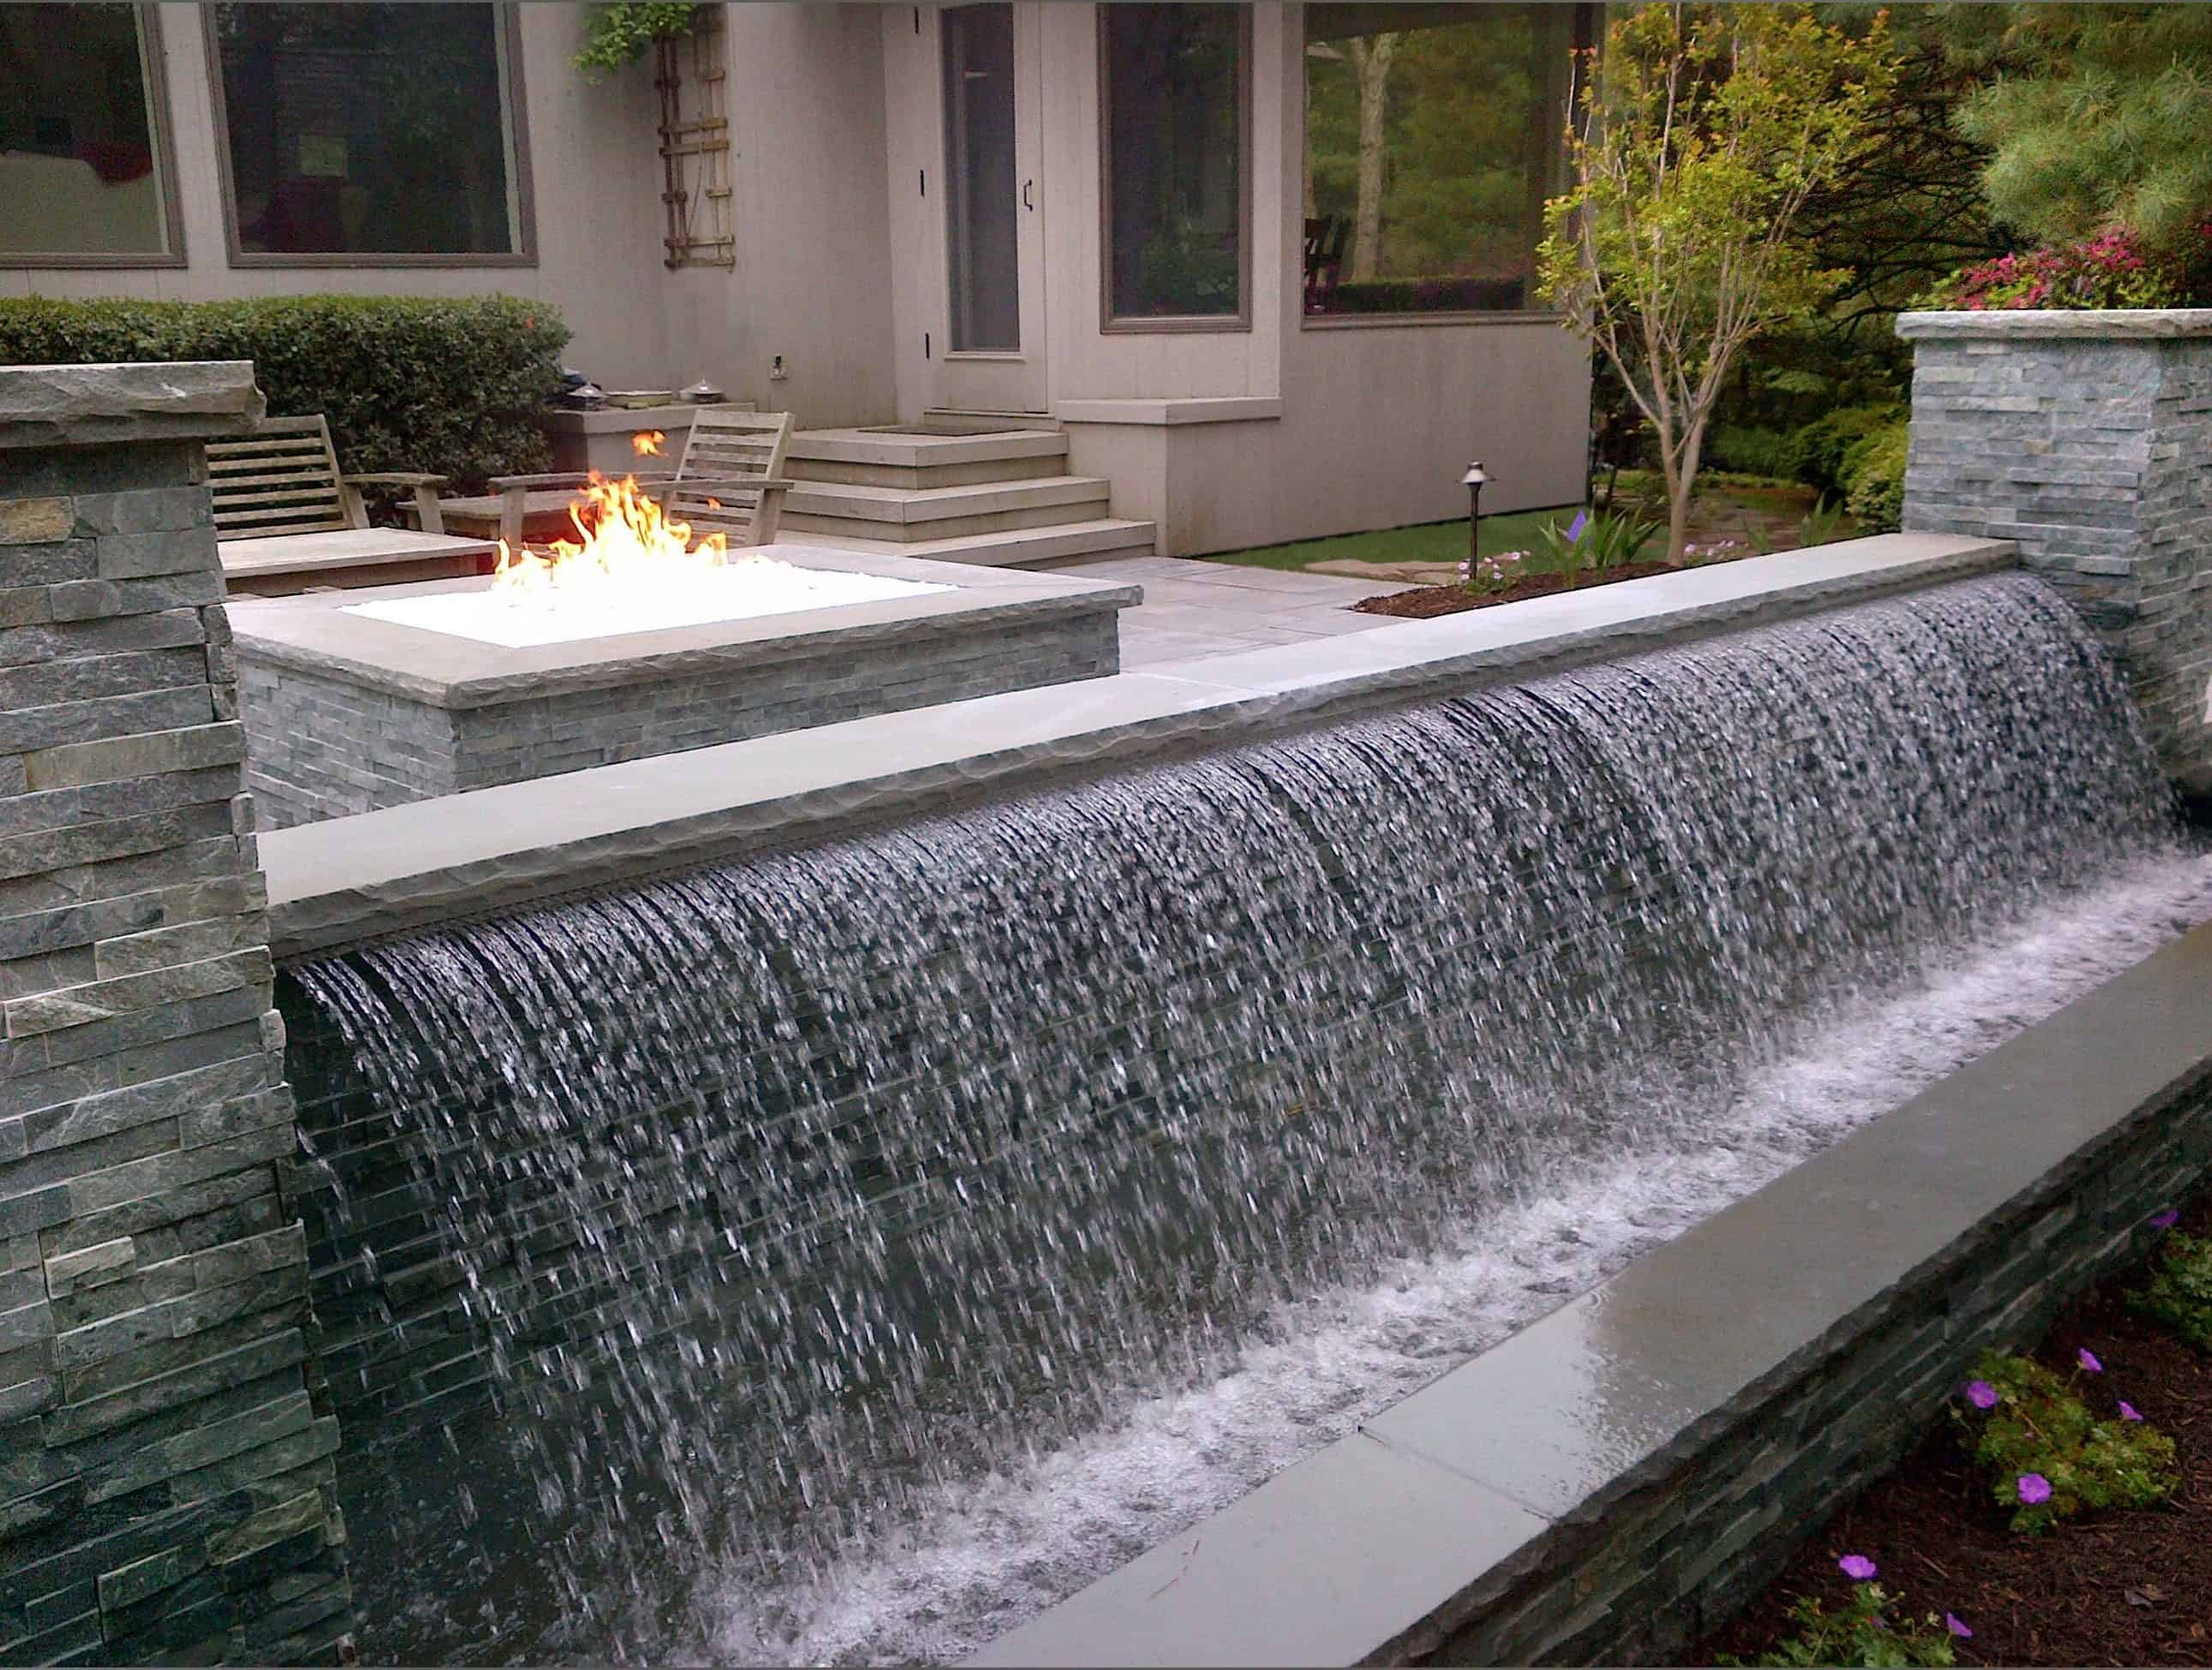 12' Sheer Descent water feature with Bluestone Caps and Real Stone System Veneer - East Hampton, Long Island NY